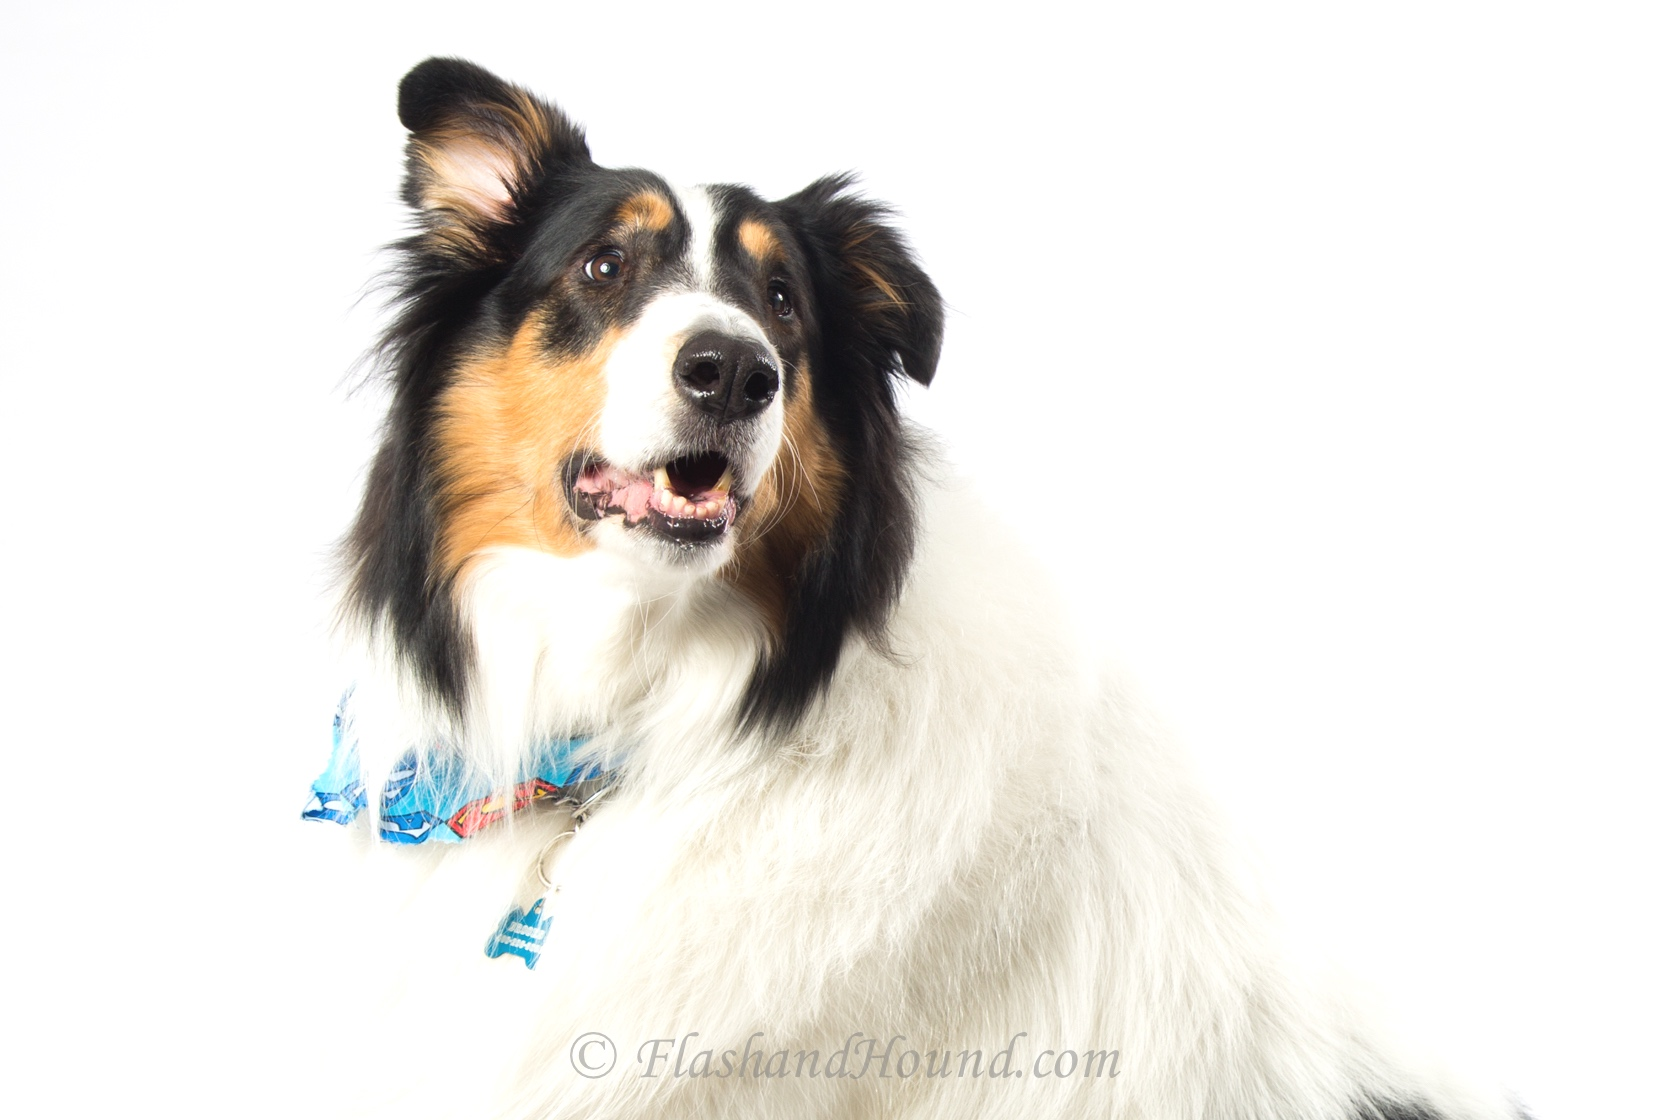 Flash and Hound Collie with ear perked up